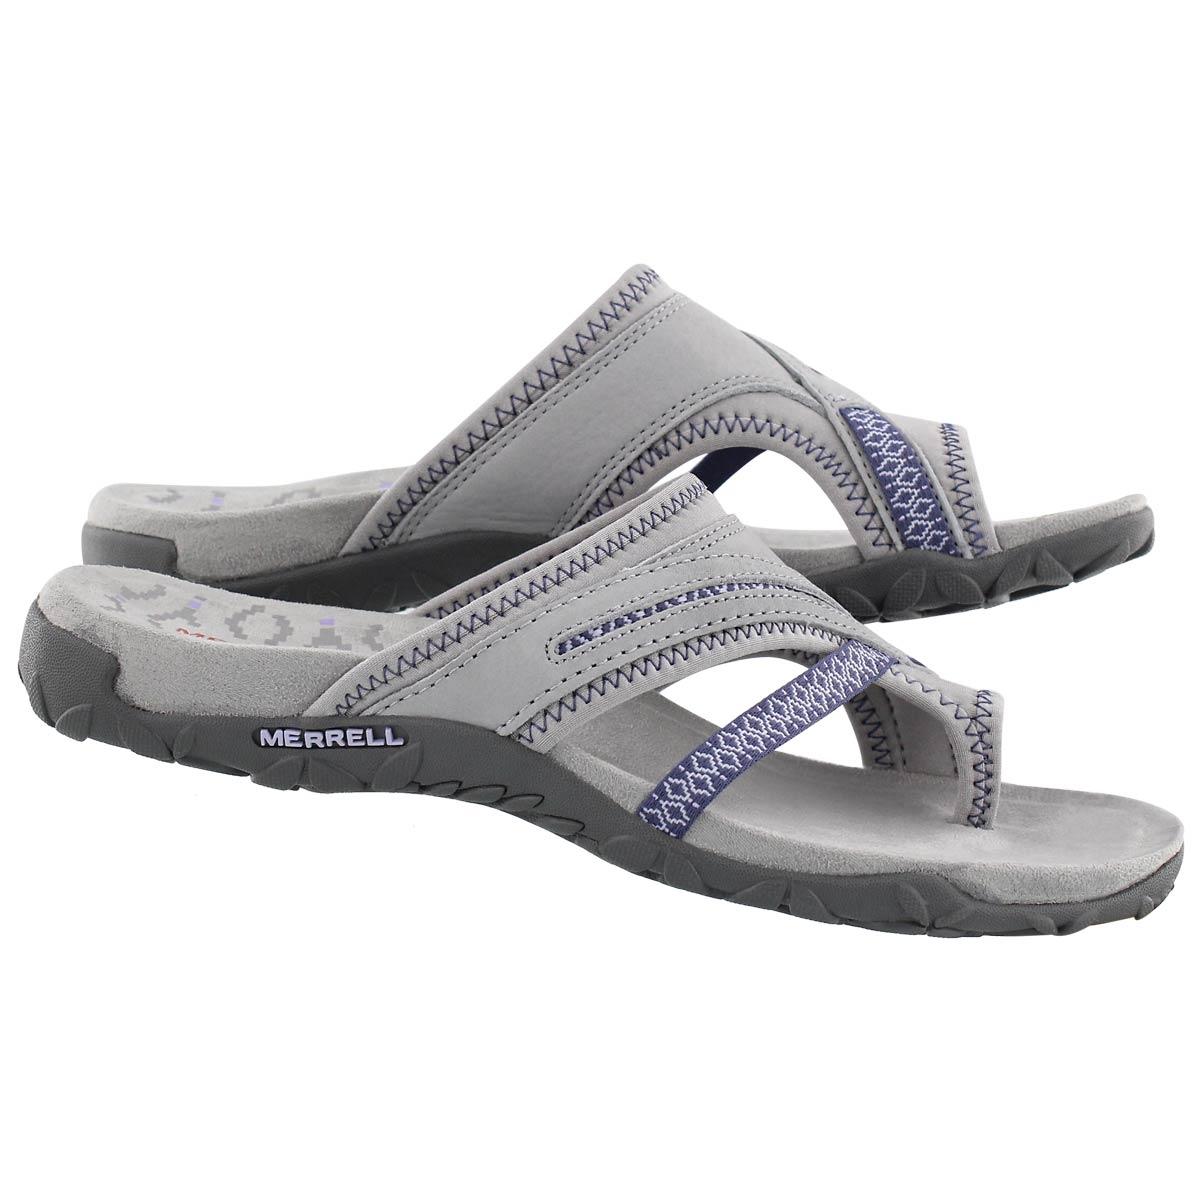 Lds Terran Post II sleet toe wrap sandal